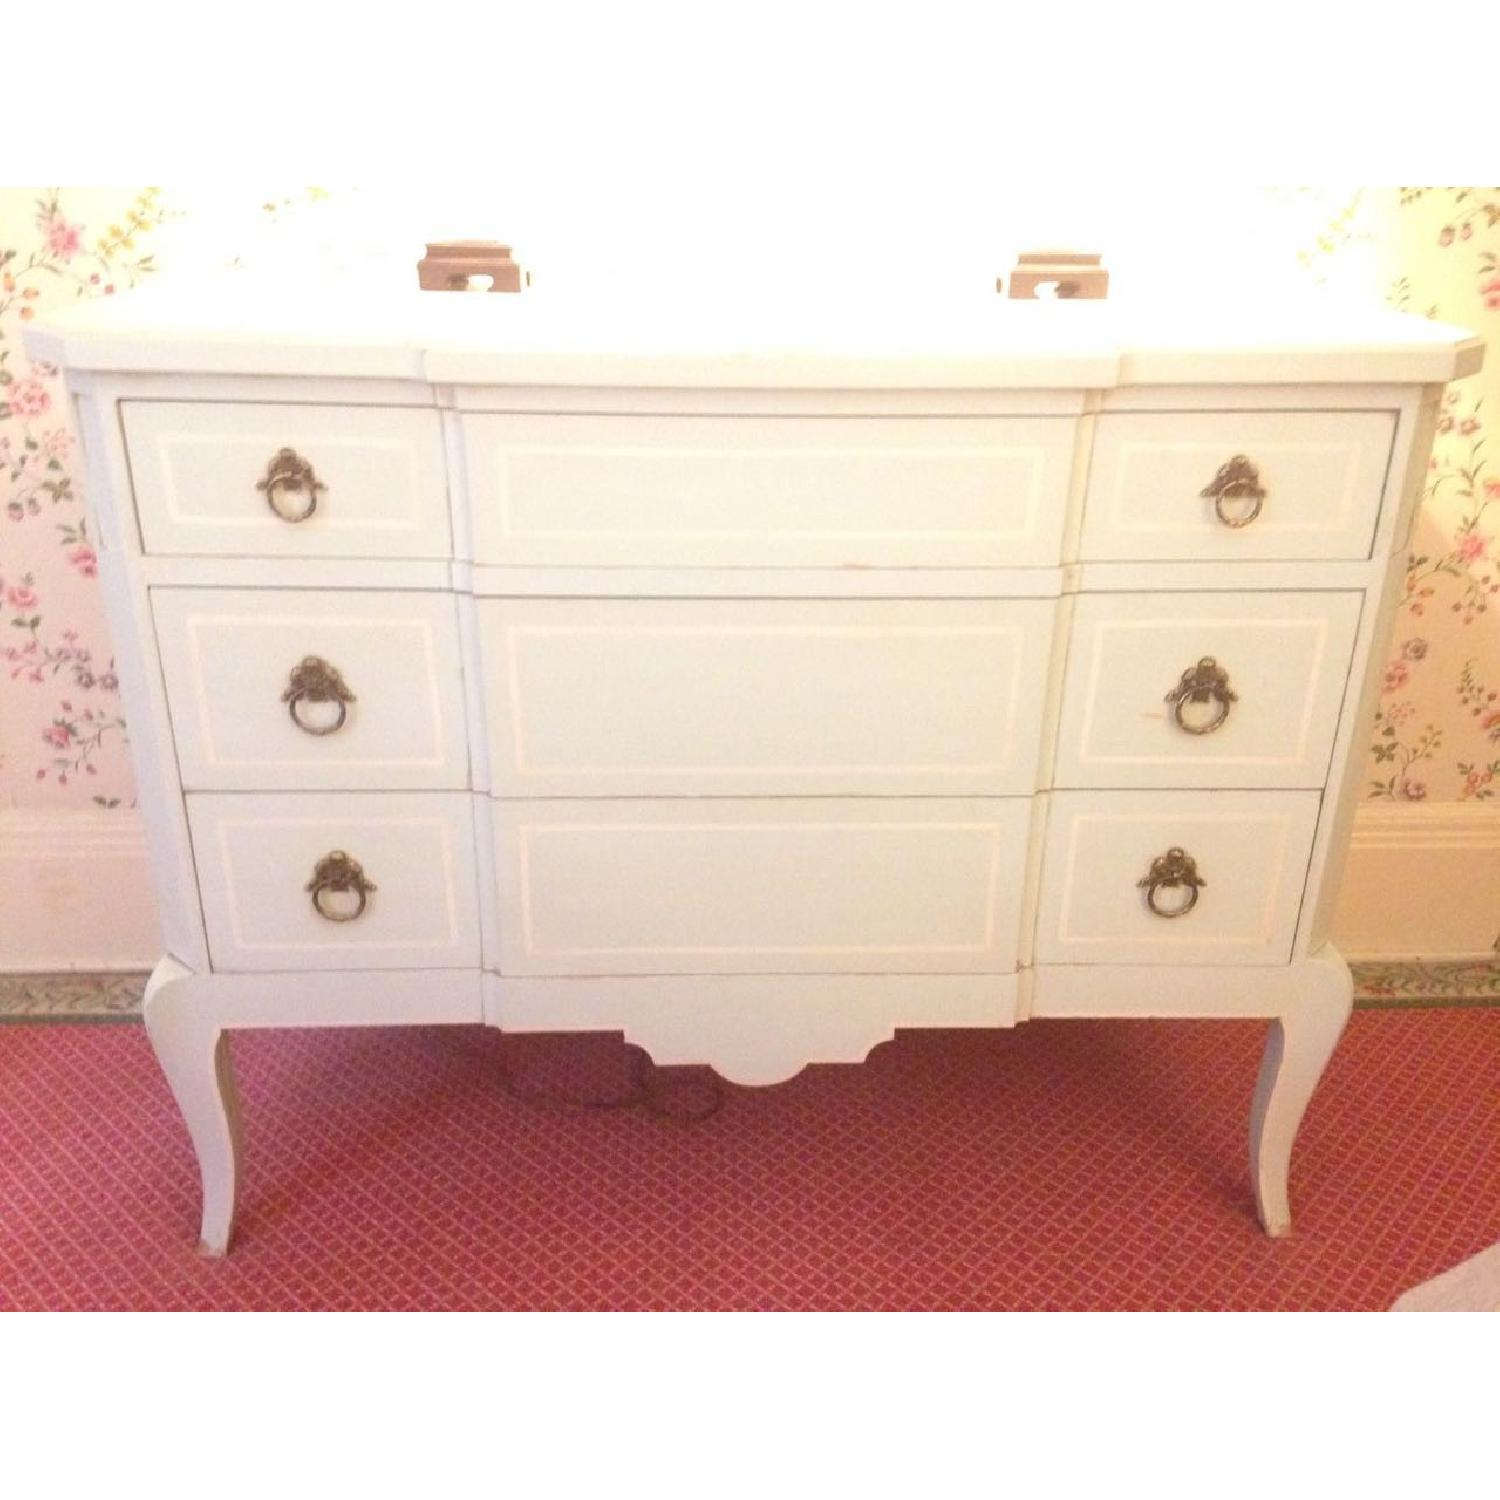 Julia Gray French Dresser w/ Blue Accents - image-12